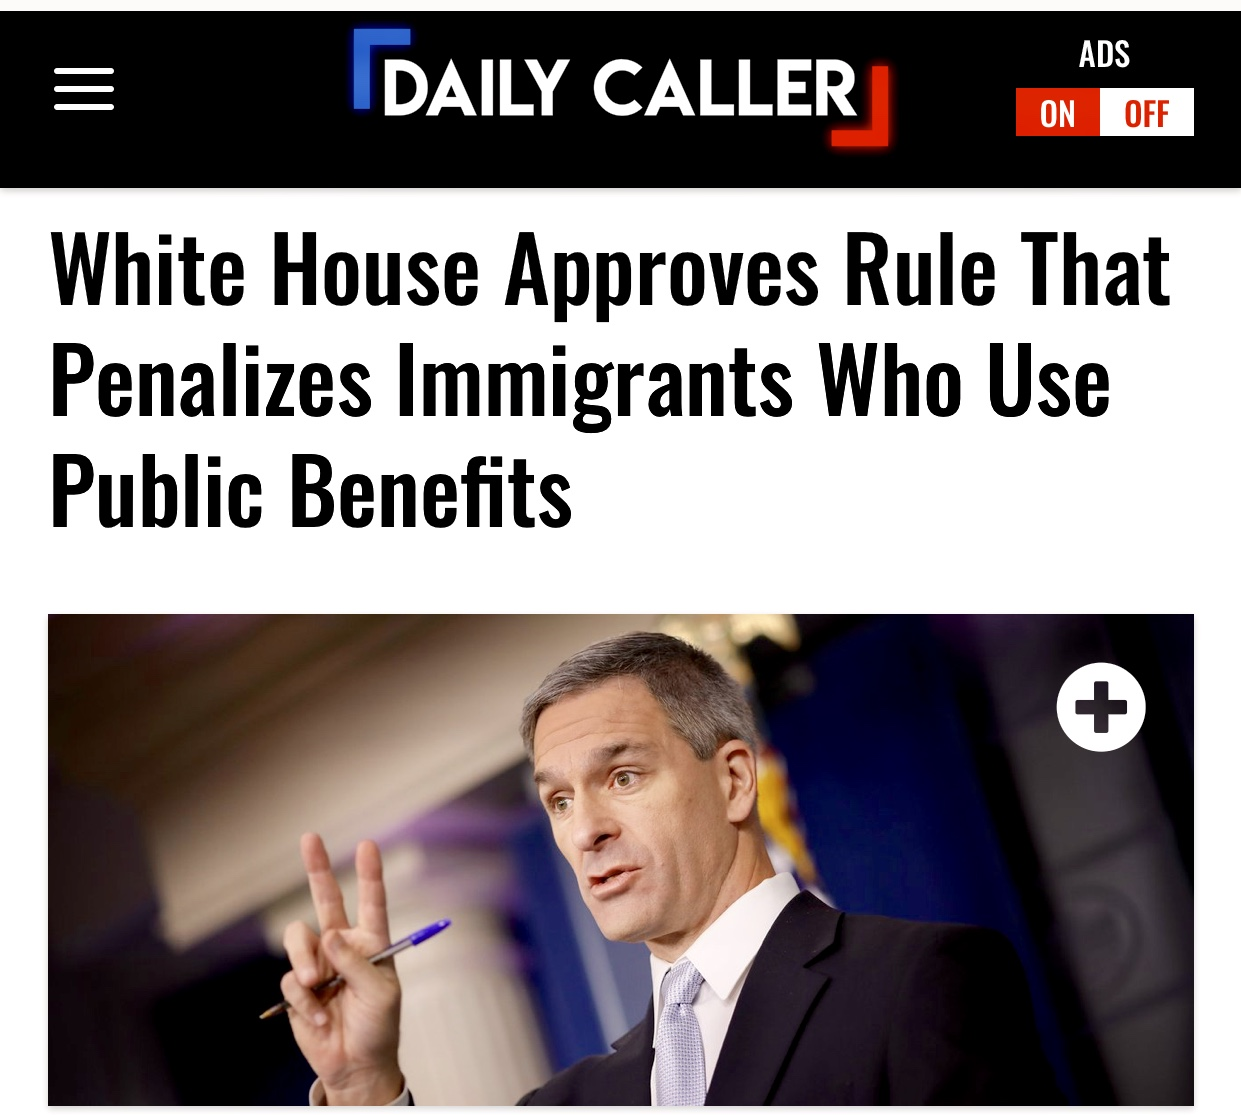 White House Approves Rule That Penalizes Immigrants Who Use Public Benefits | The Daily Caller